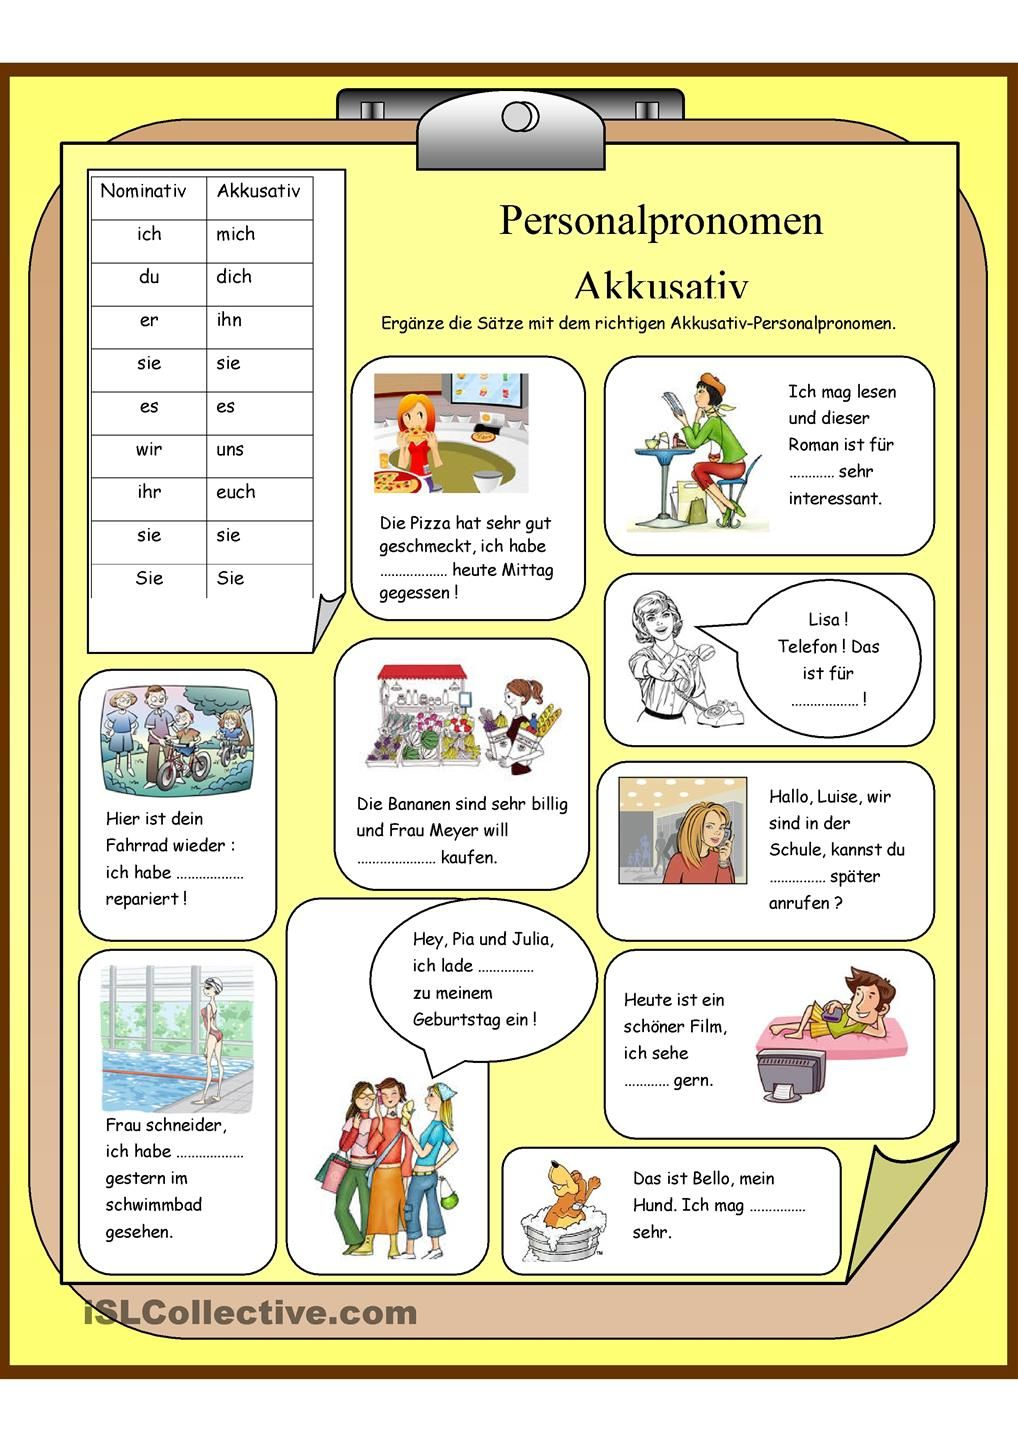 Personalpronomen - Akkusativ | Pronomen in 2018 | Pinterest ...